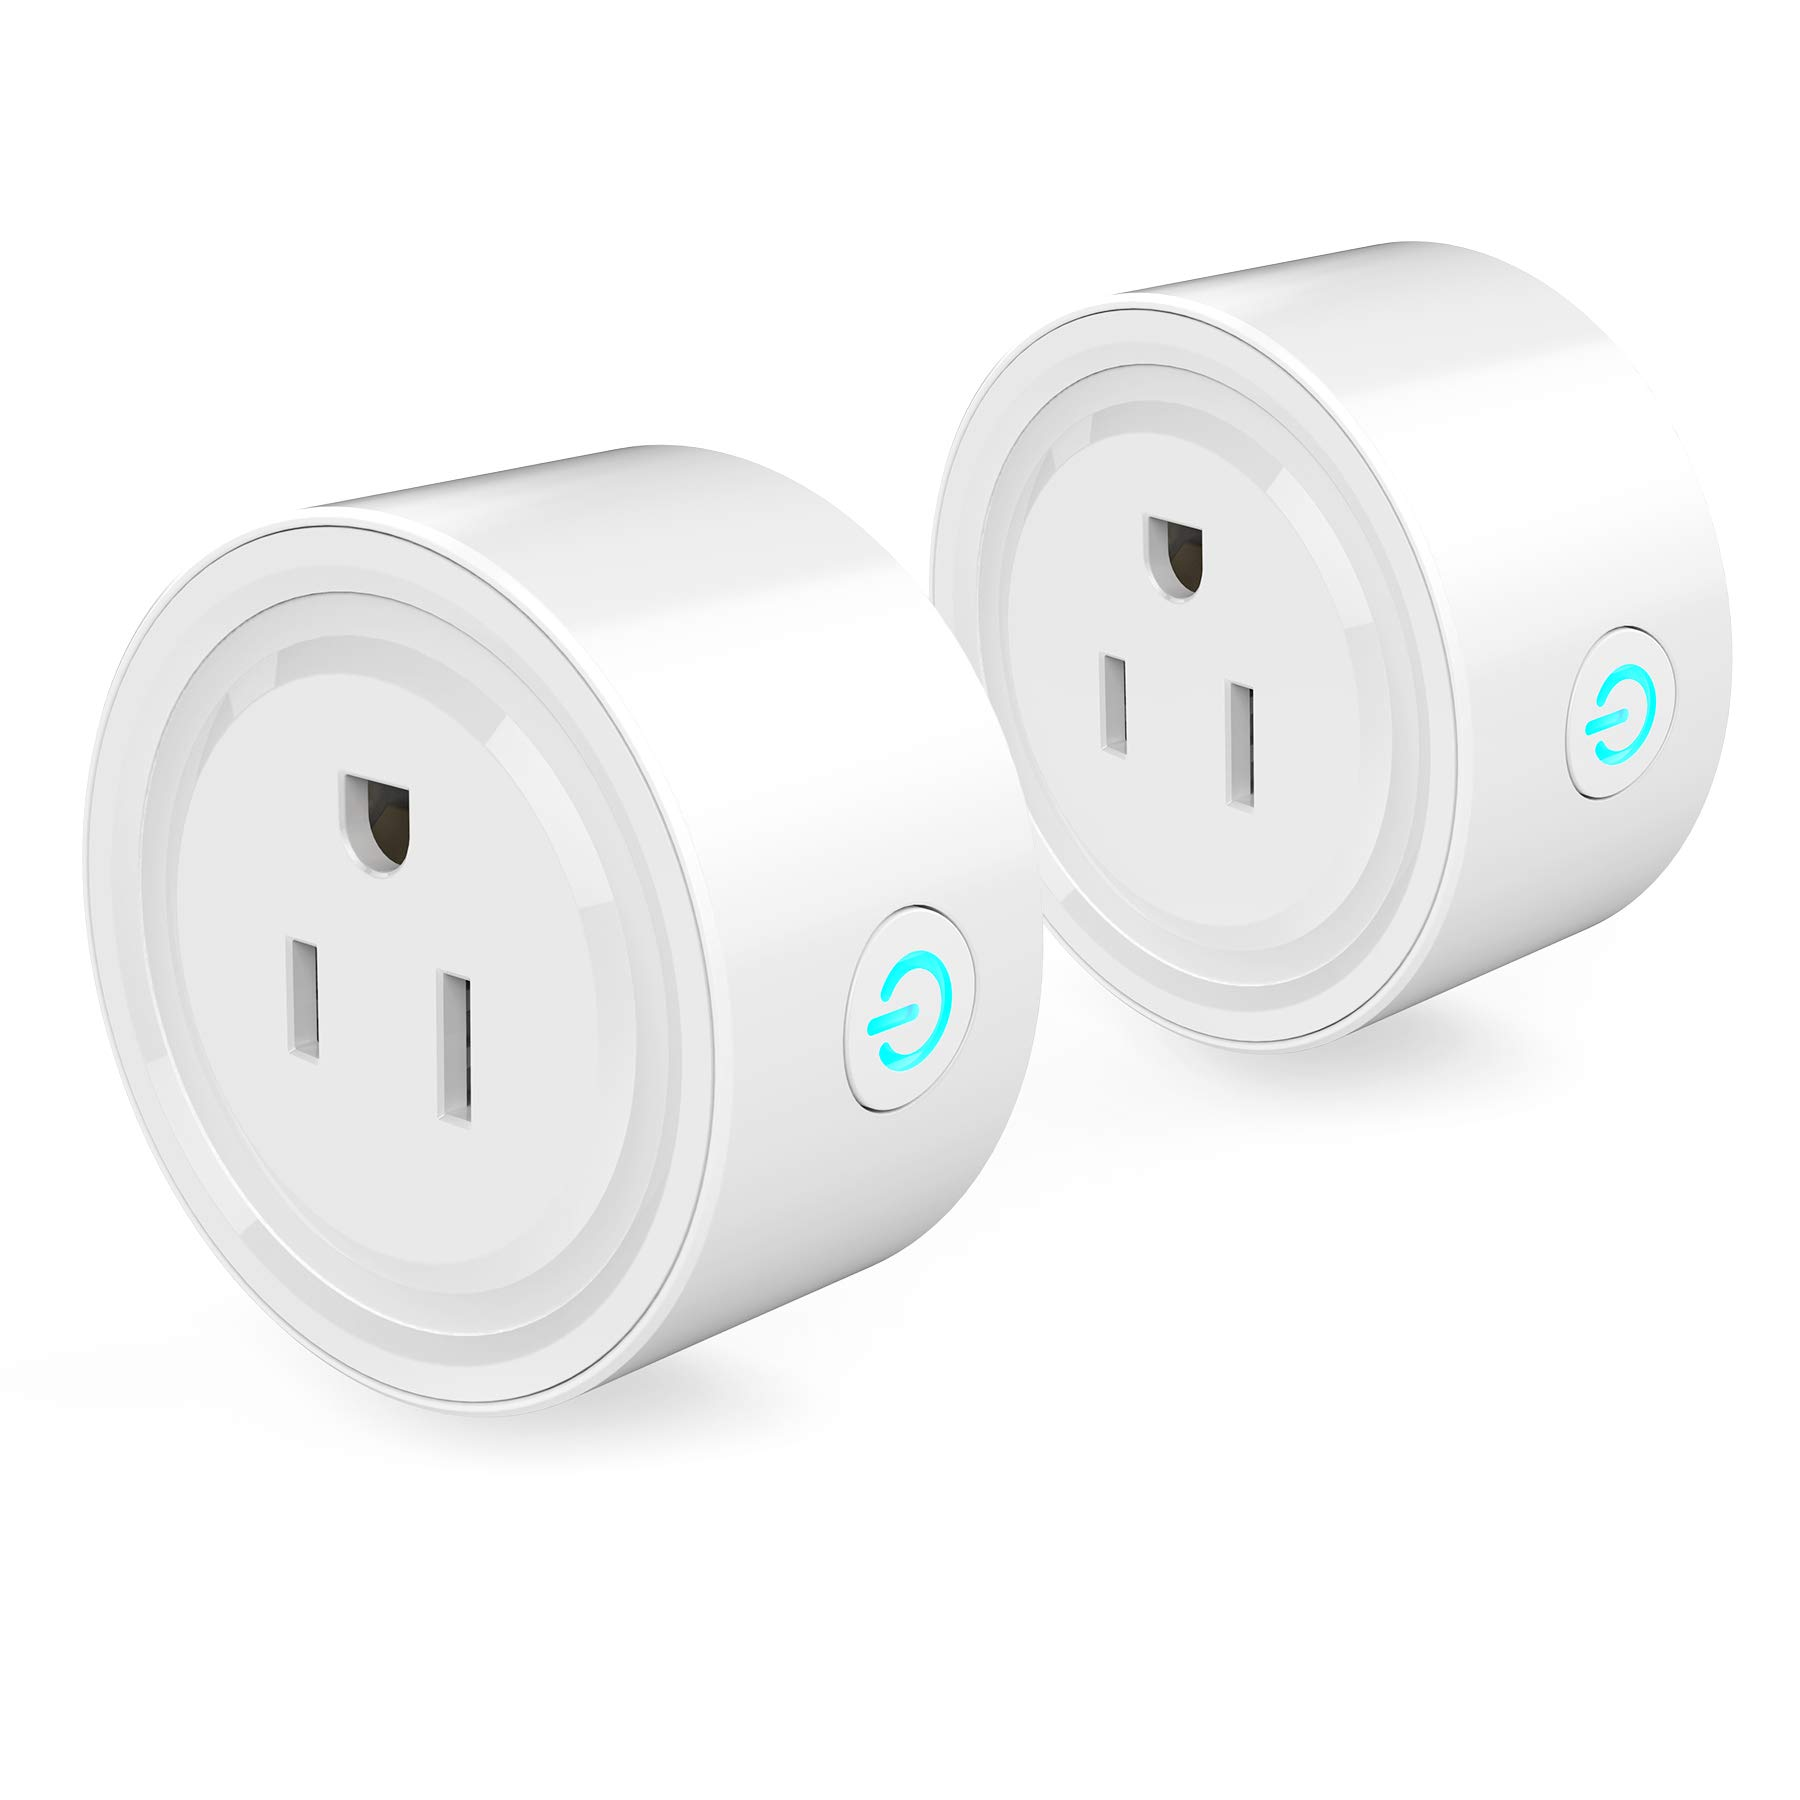 Koeson Smart Plug, Timing Switch Power Monitoring Smart Socket, No Hub Required, Control your Devices from Anywhere, Compatible with Alexa Echo and Google Home, White Fashion Design(2 Pack)